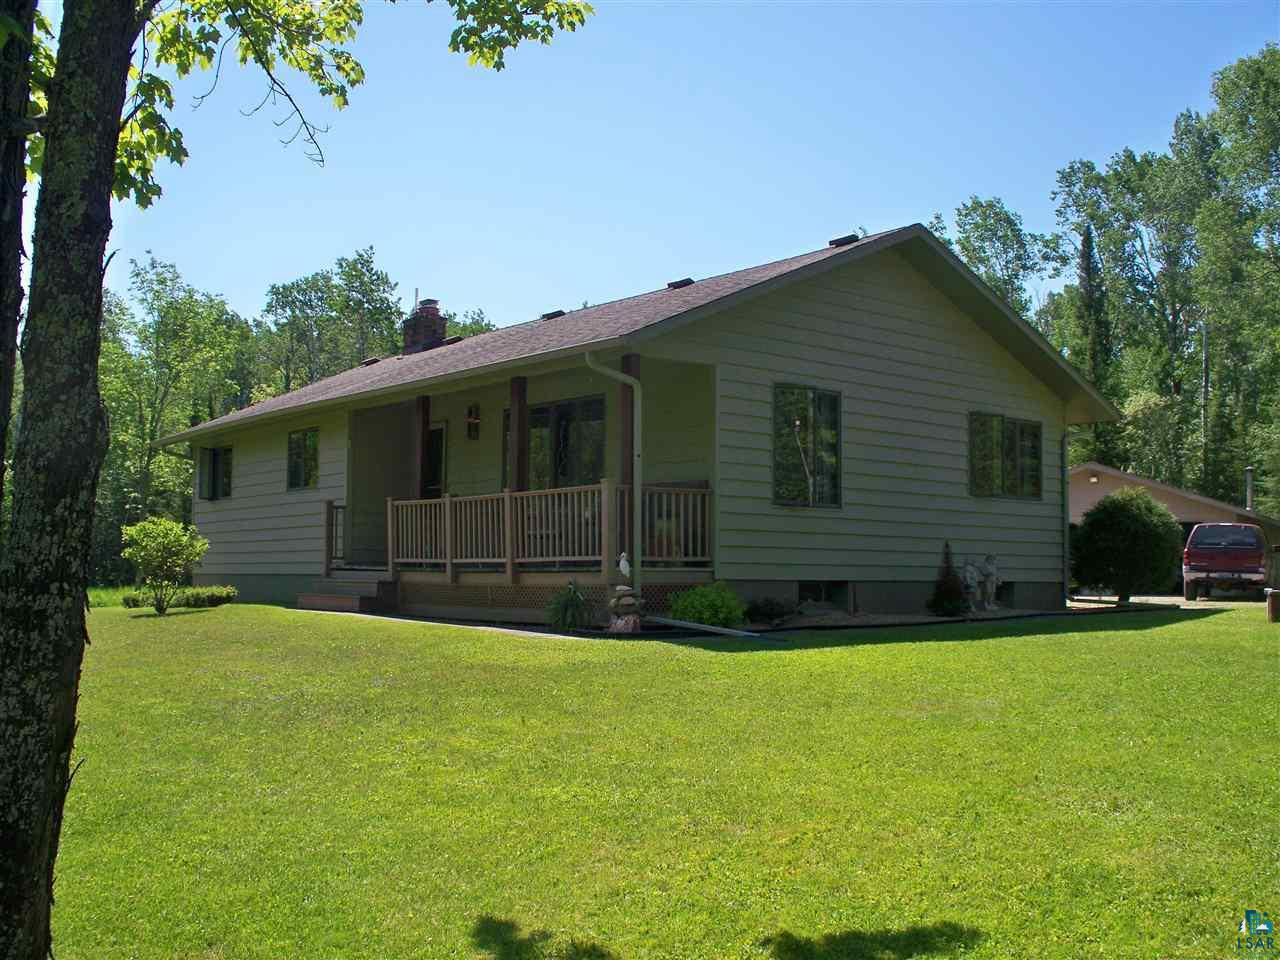 WOW. Enjoy 10.6 acres of part wooded and part open land, yet only minutes from Superior. Very well maintained home has had only one owner. Enjoy your morning coffee on the deck and watch the wildlife. This home features Cherry kitchen cabinets, newer appliances, formal dining area, spacious living room, 3 bedrooms and full bath all on the main level. New roof in 2020, Central air, city gas and drilled well. Full Basement with laundry and bath w/ walk-in shower. Family room with gas fireplace, game room, and much more. Cedar siding. Gutters. Over sized 26x36 detached garage w/wood stove. Property is beautifully landscaped and is nice and level. Small storage building for your garden tools etc. Pool Table is included (may want to place on Bill of Sale).